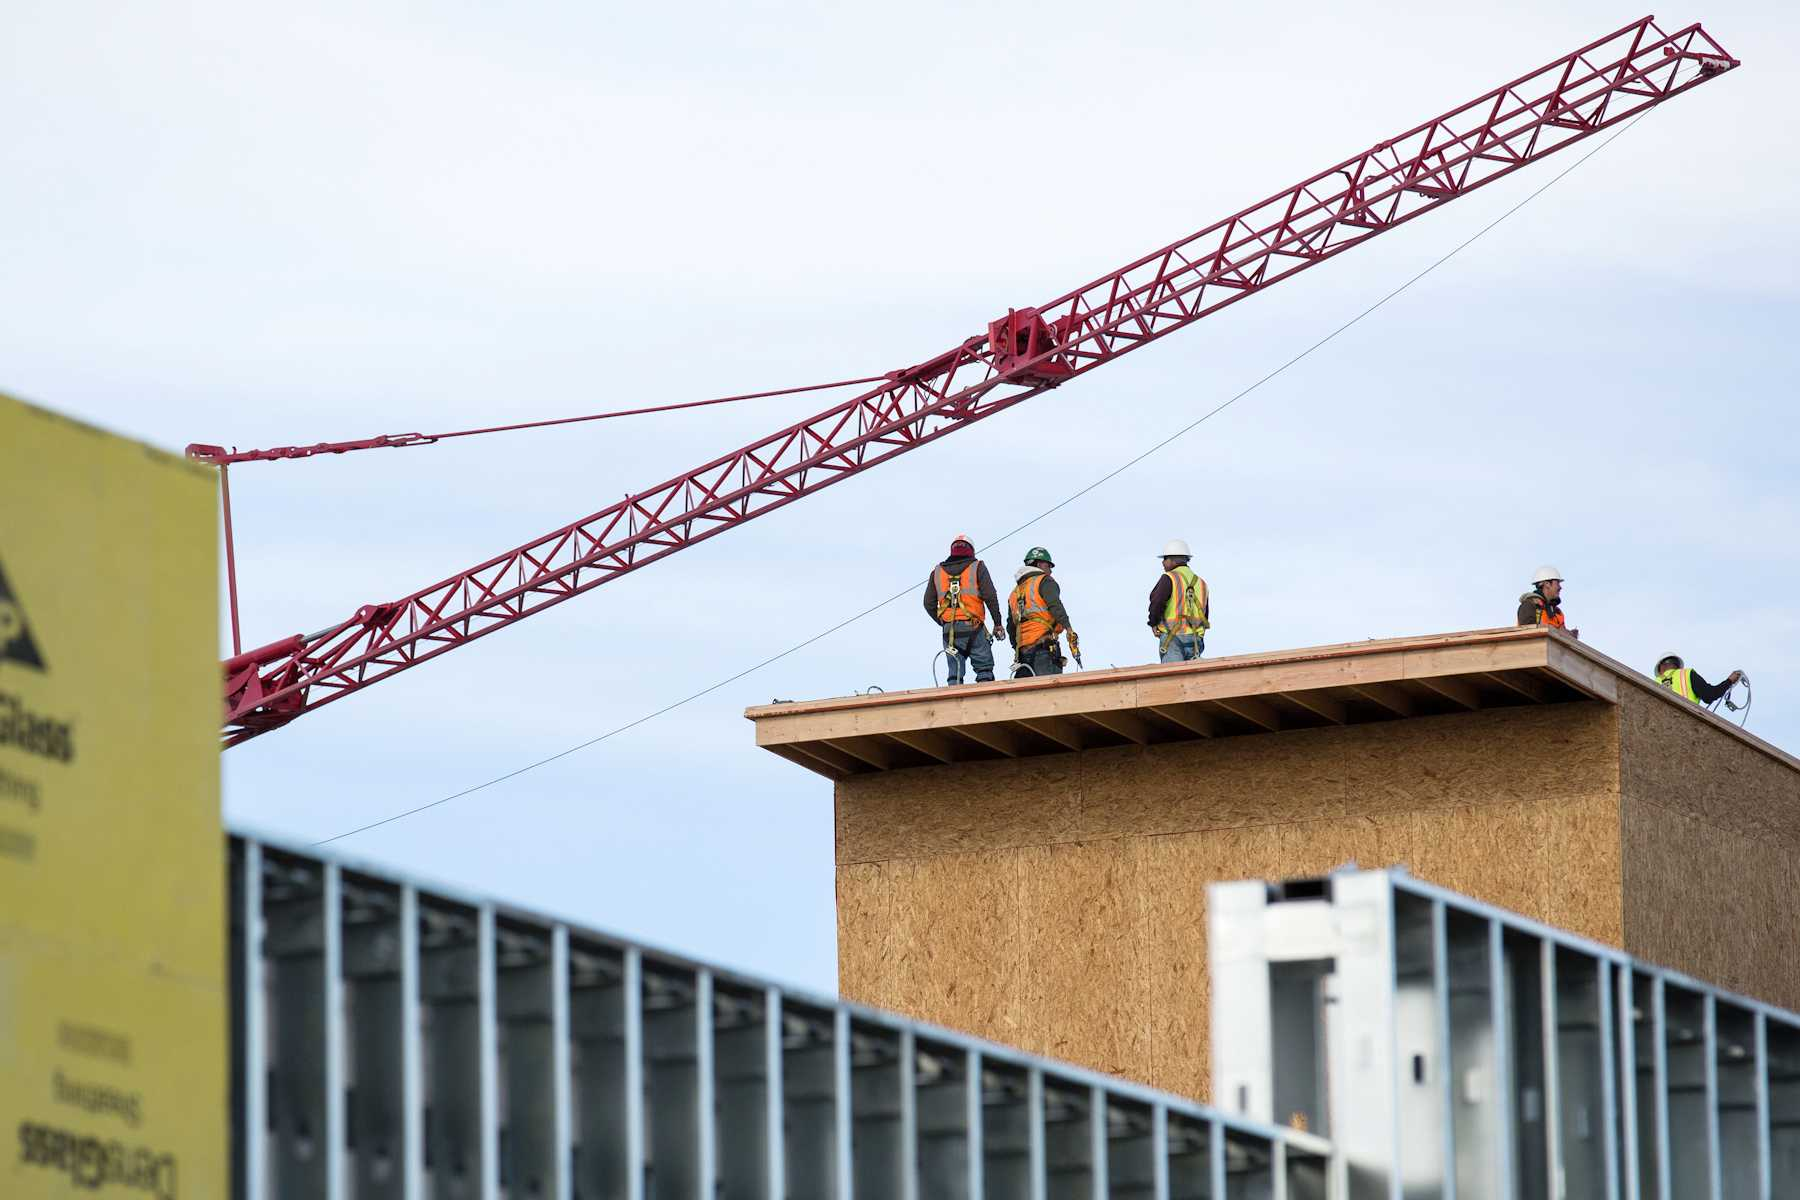 A constuction crew works on the roof of the new student apartment complex, The Summit, on the corner of College Ave. and Prospect St. The complex is expected to be completed in summer of 2012 and is apart of a plan to increase the student housing in Fort Collins.